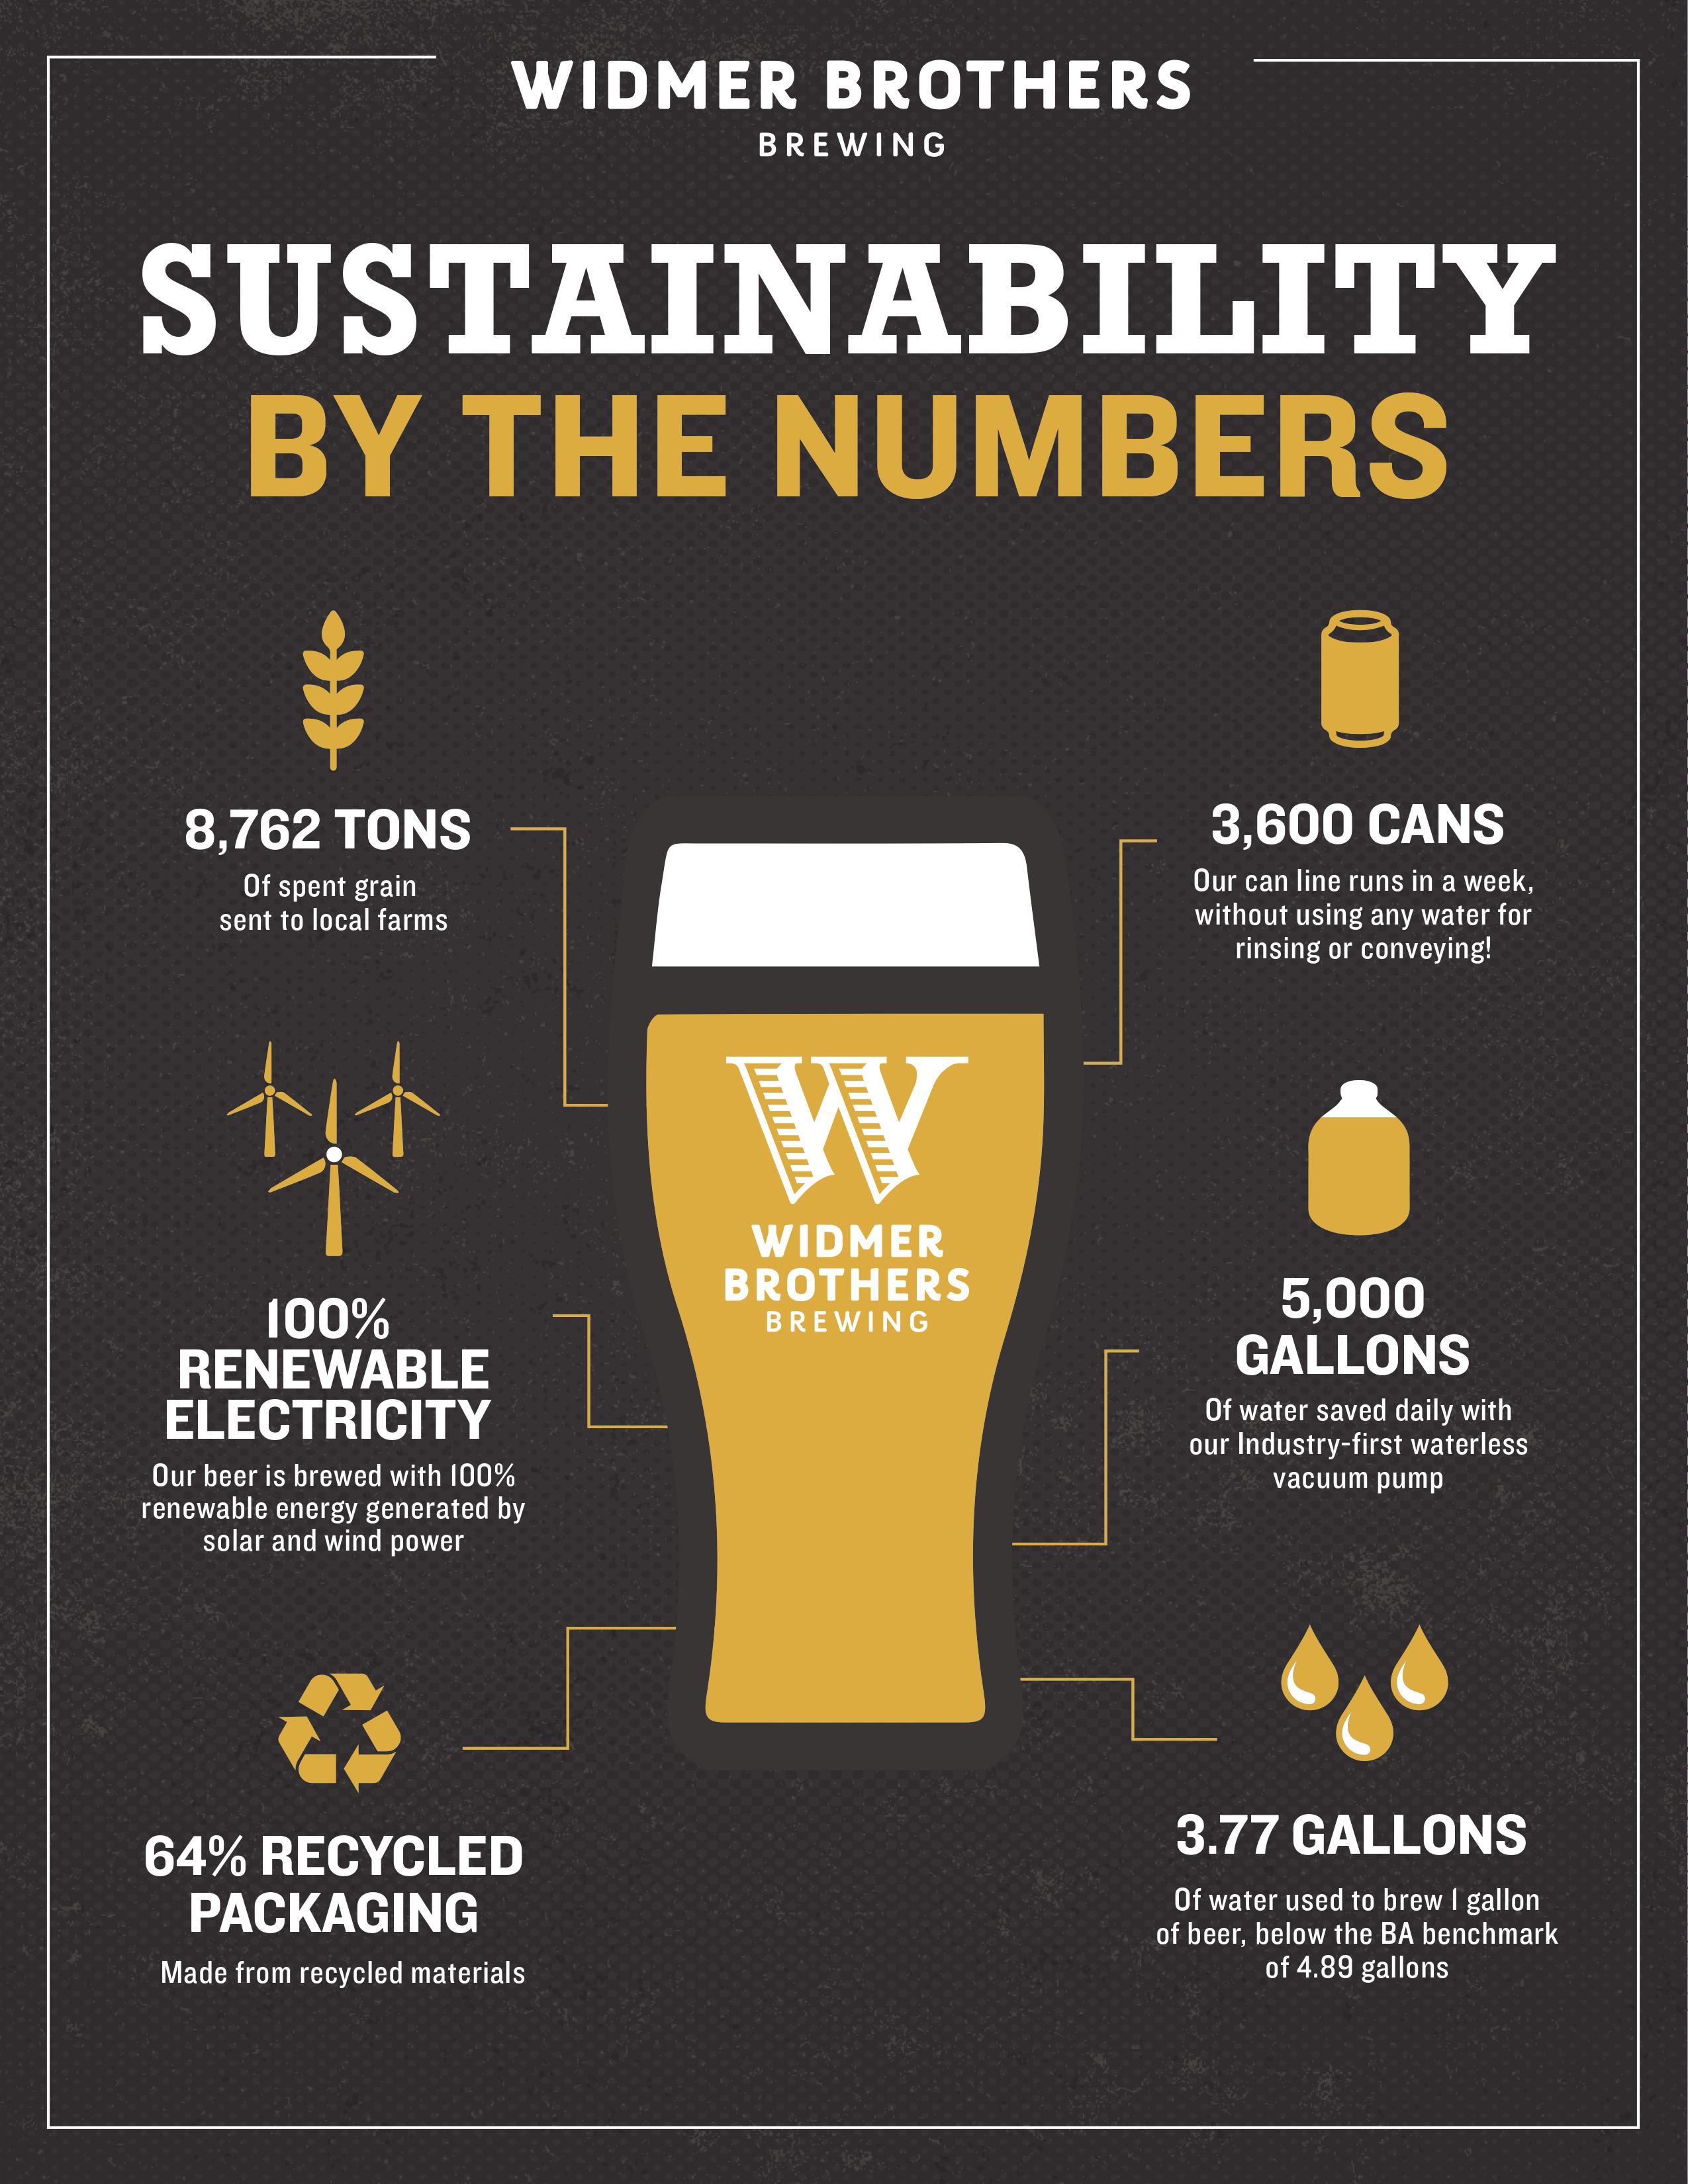 Widmer Brothers Brewing Sustainability Infographic